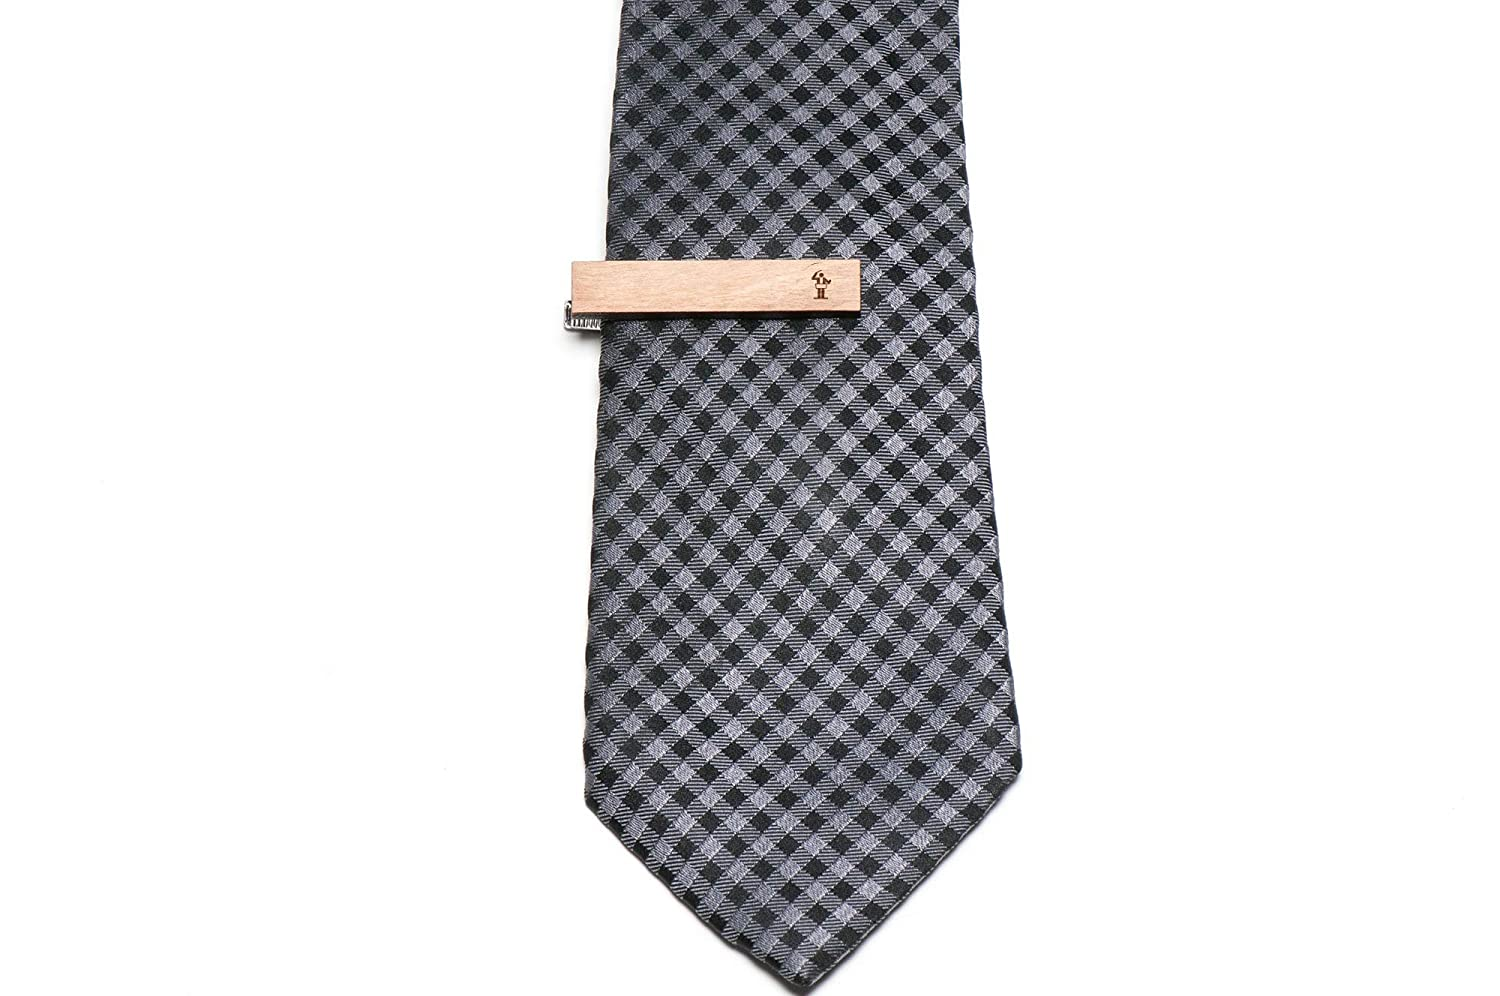 Wooden Accessories Company Wooden Tie Clips with Laser Engraved Conductor Design Cherry Wood Tie Bar Engraved in The USA